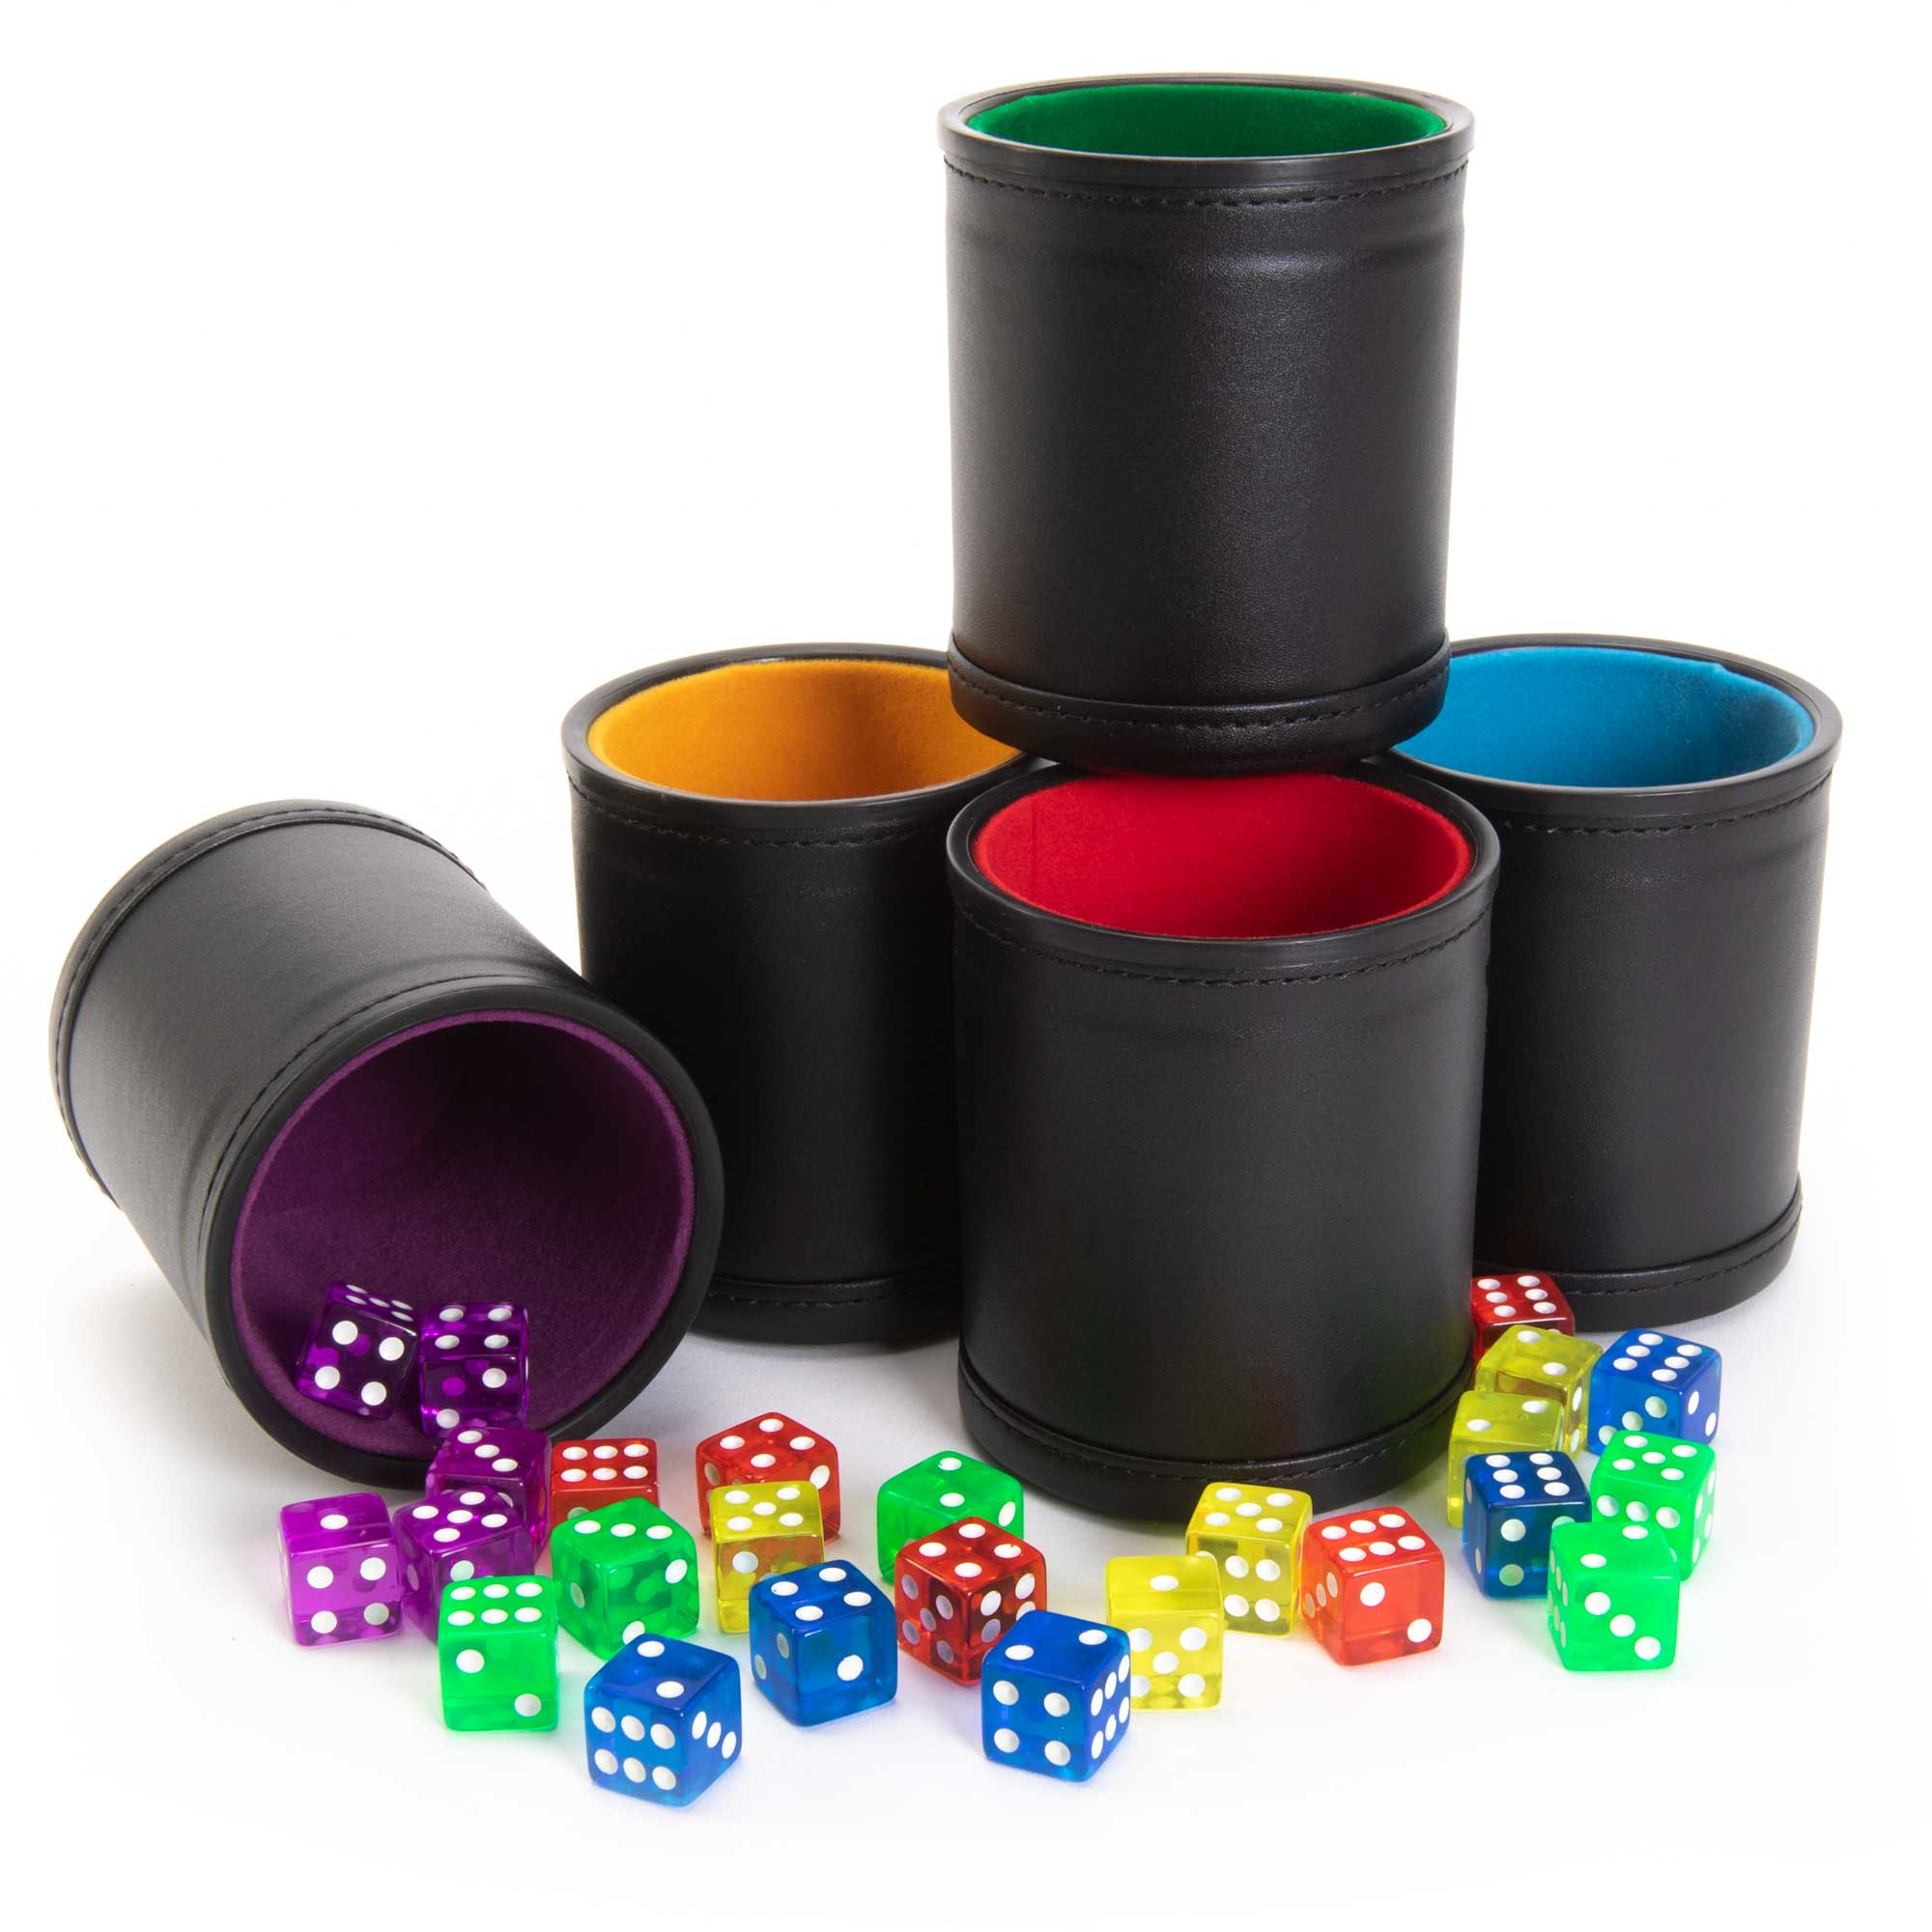 Professional Dice Cups Game Night Pack, Assorted Colors 5-pk